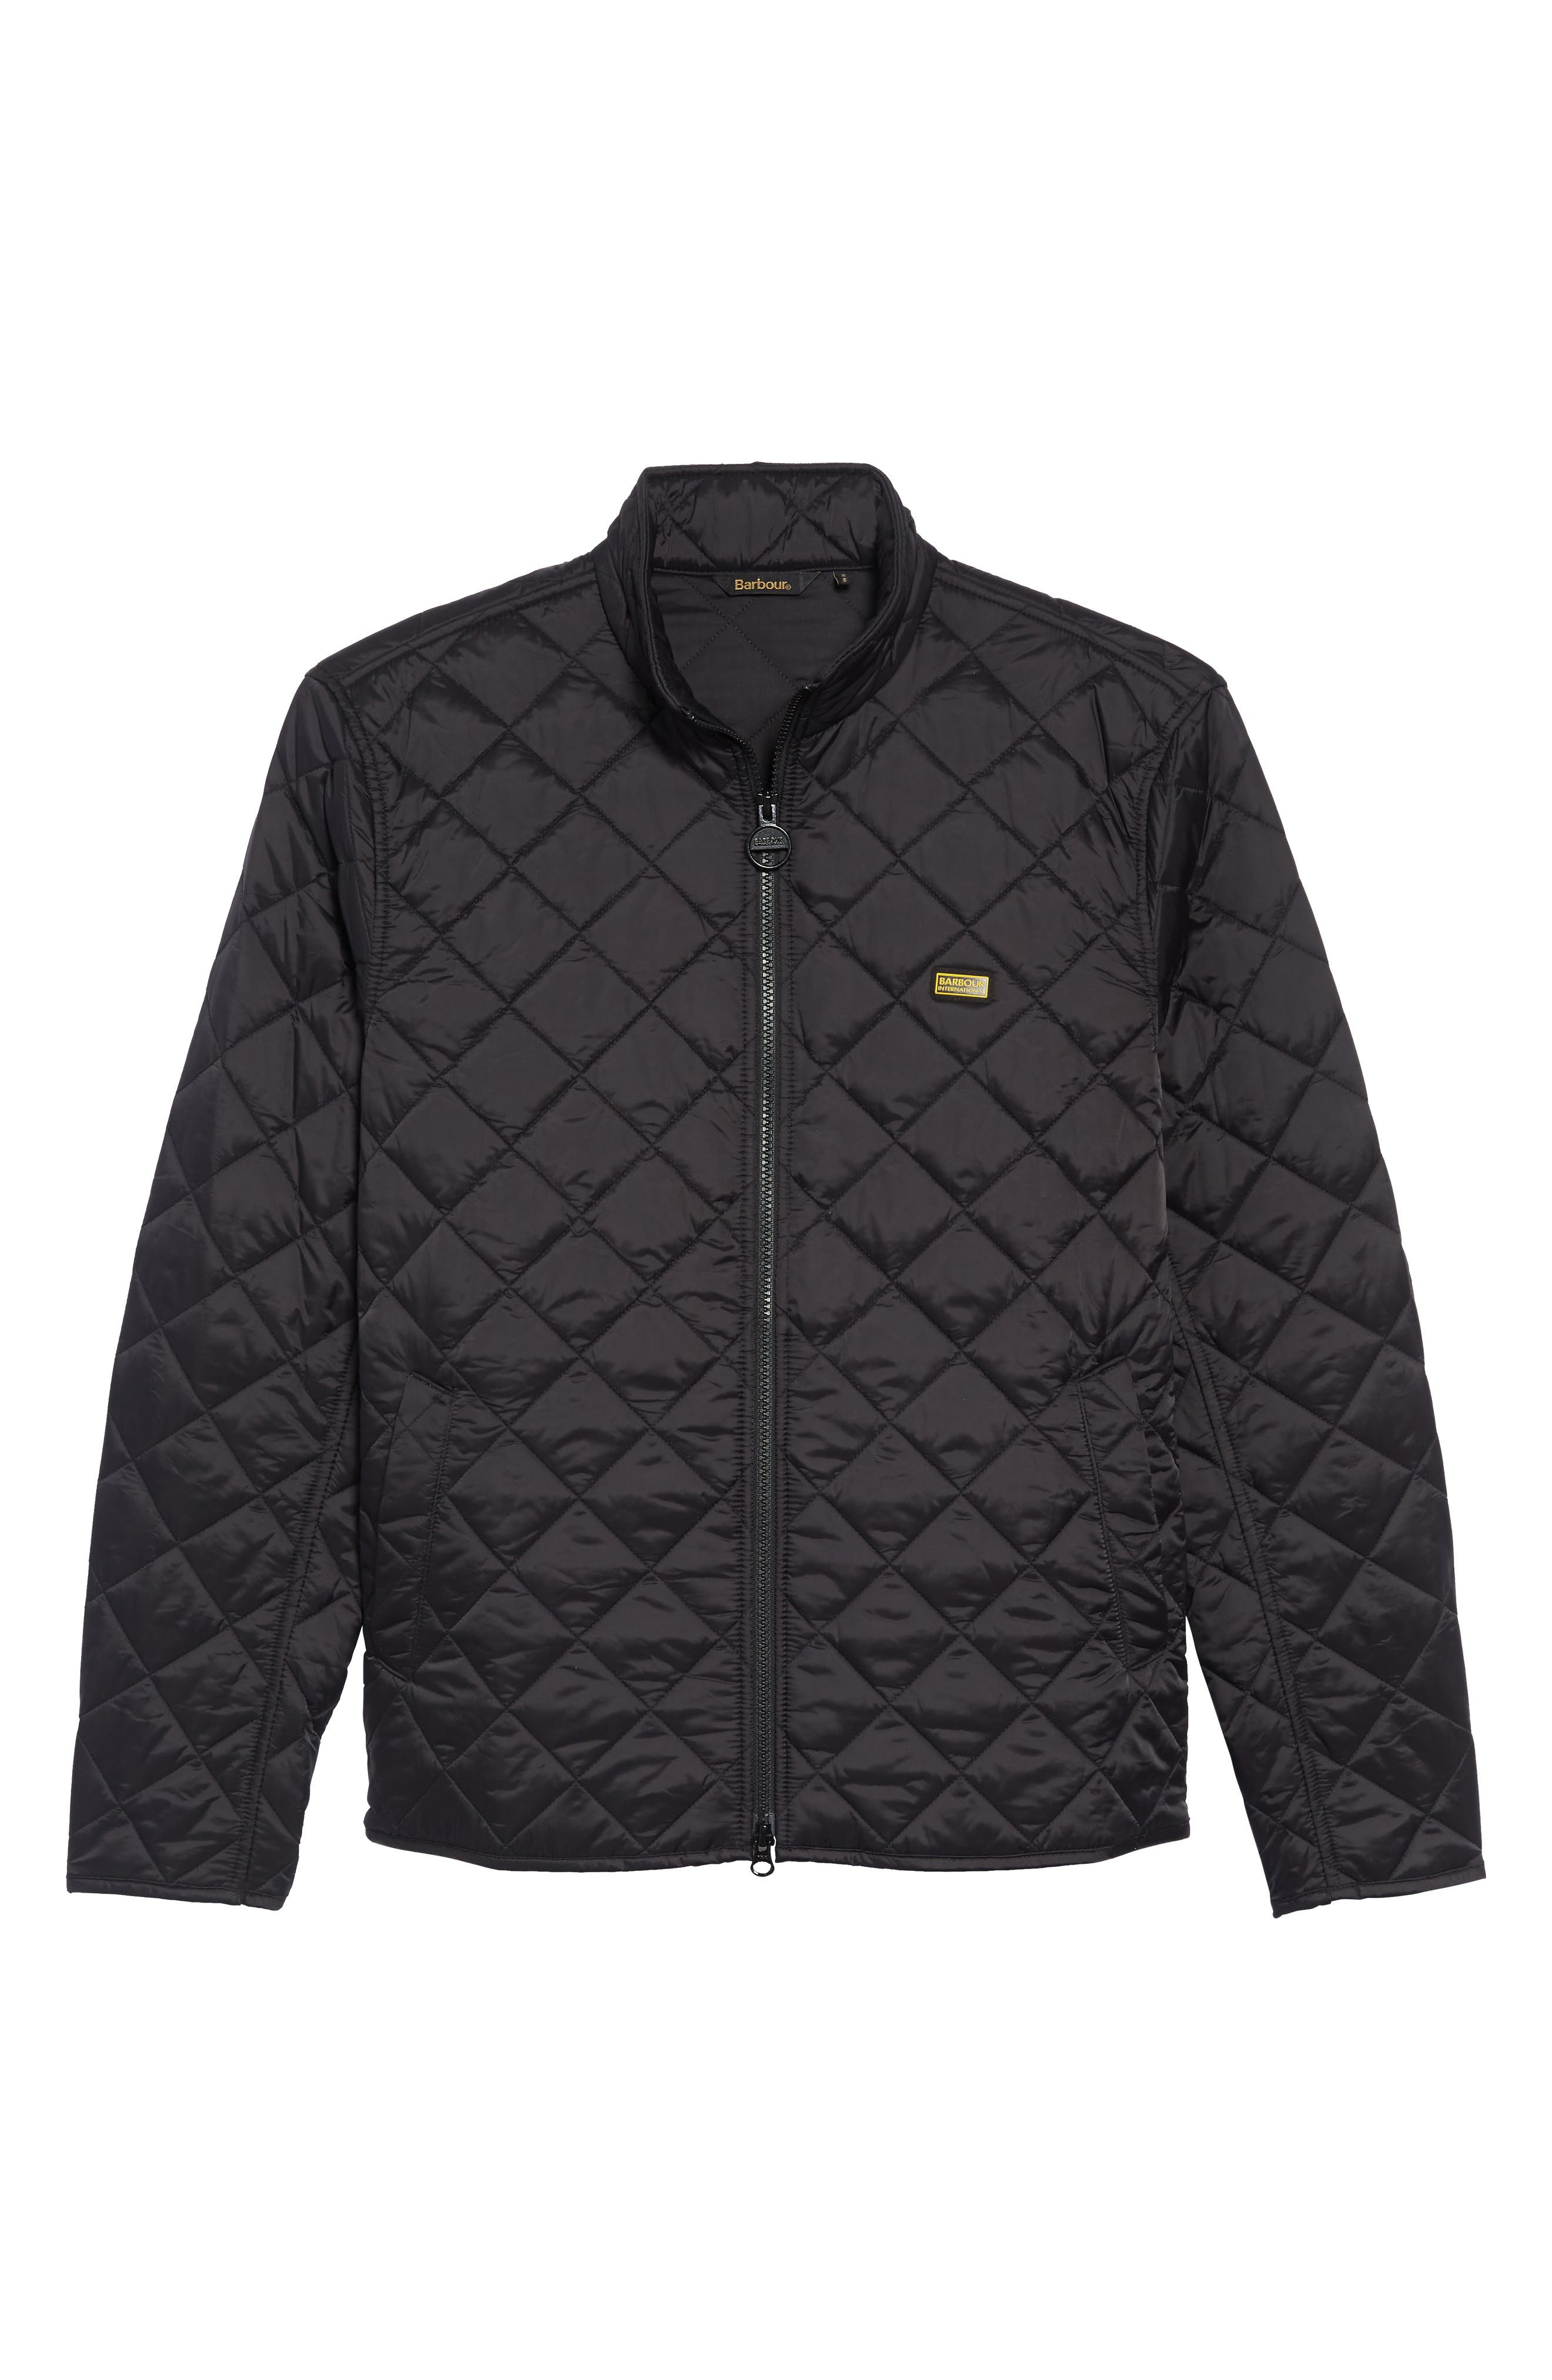 BARBOUR,                             Gear Quilted Jacket,                             Alternate thumbnail 6, color,                             BLACK